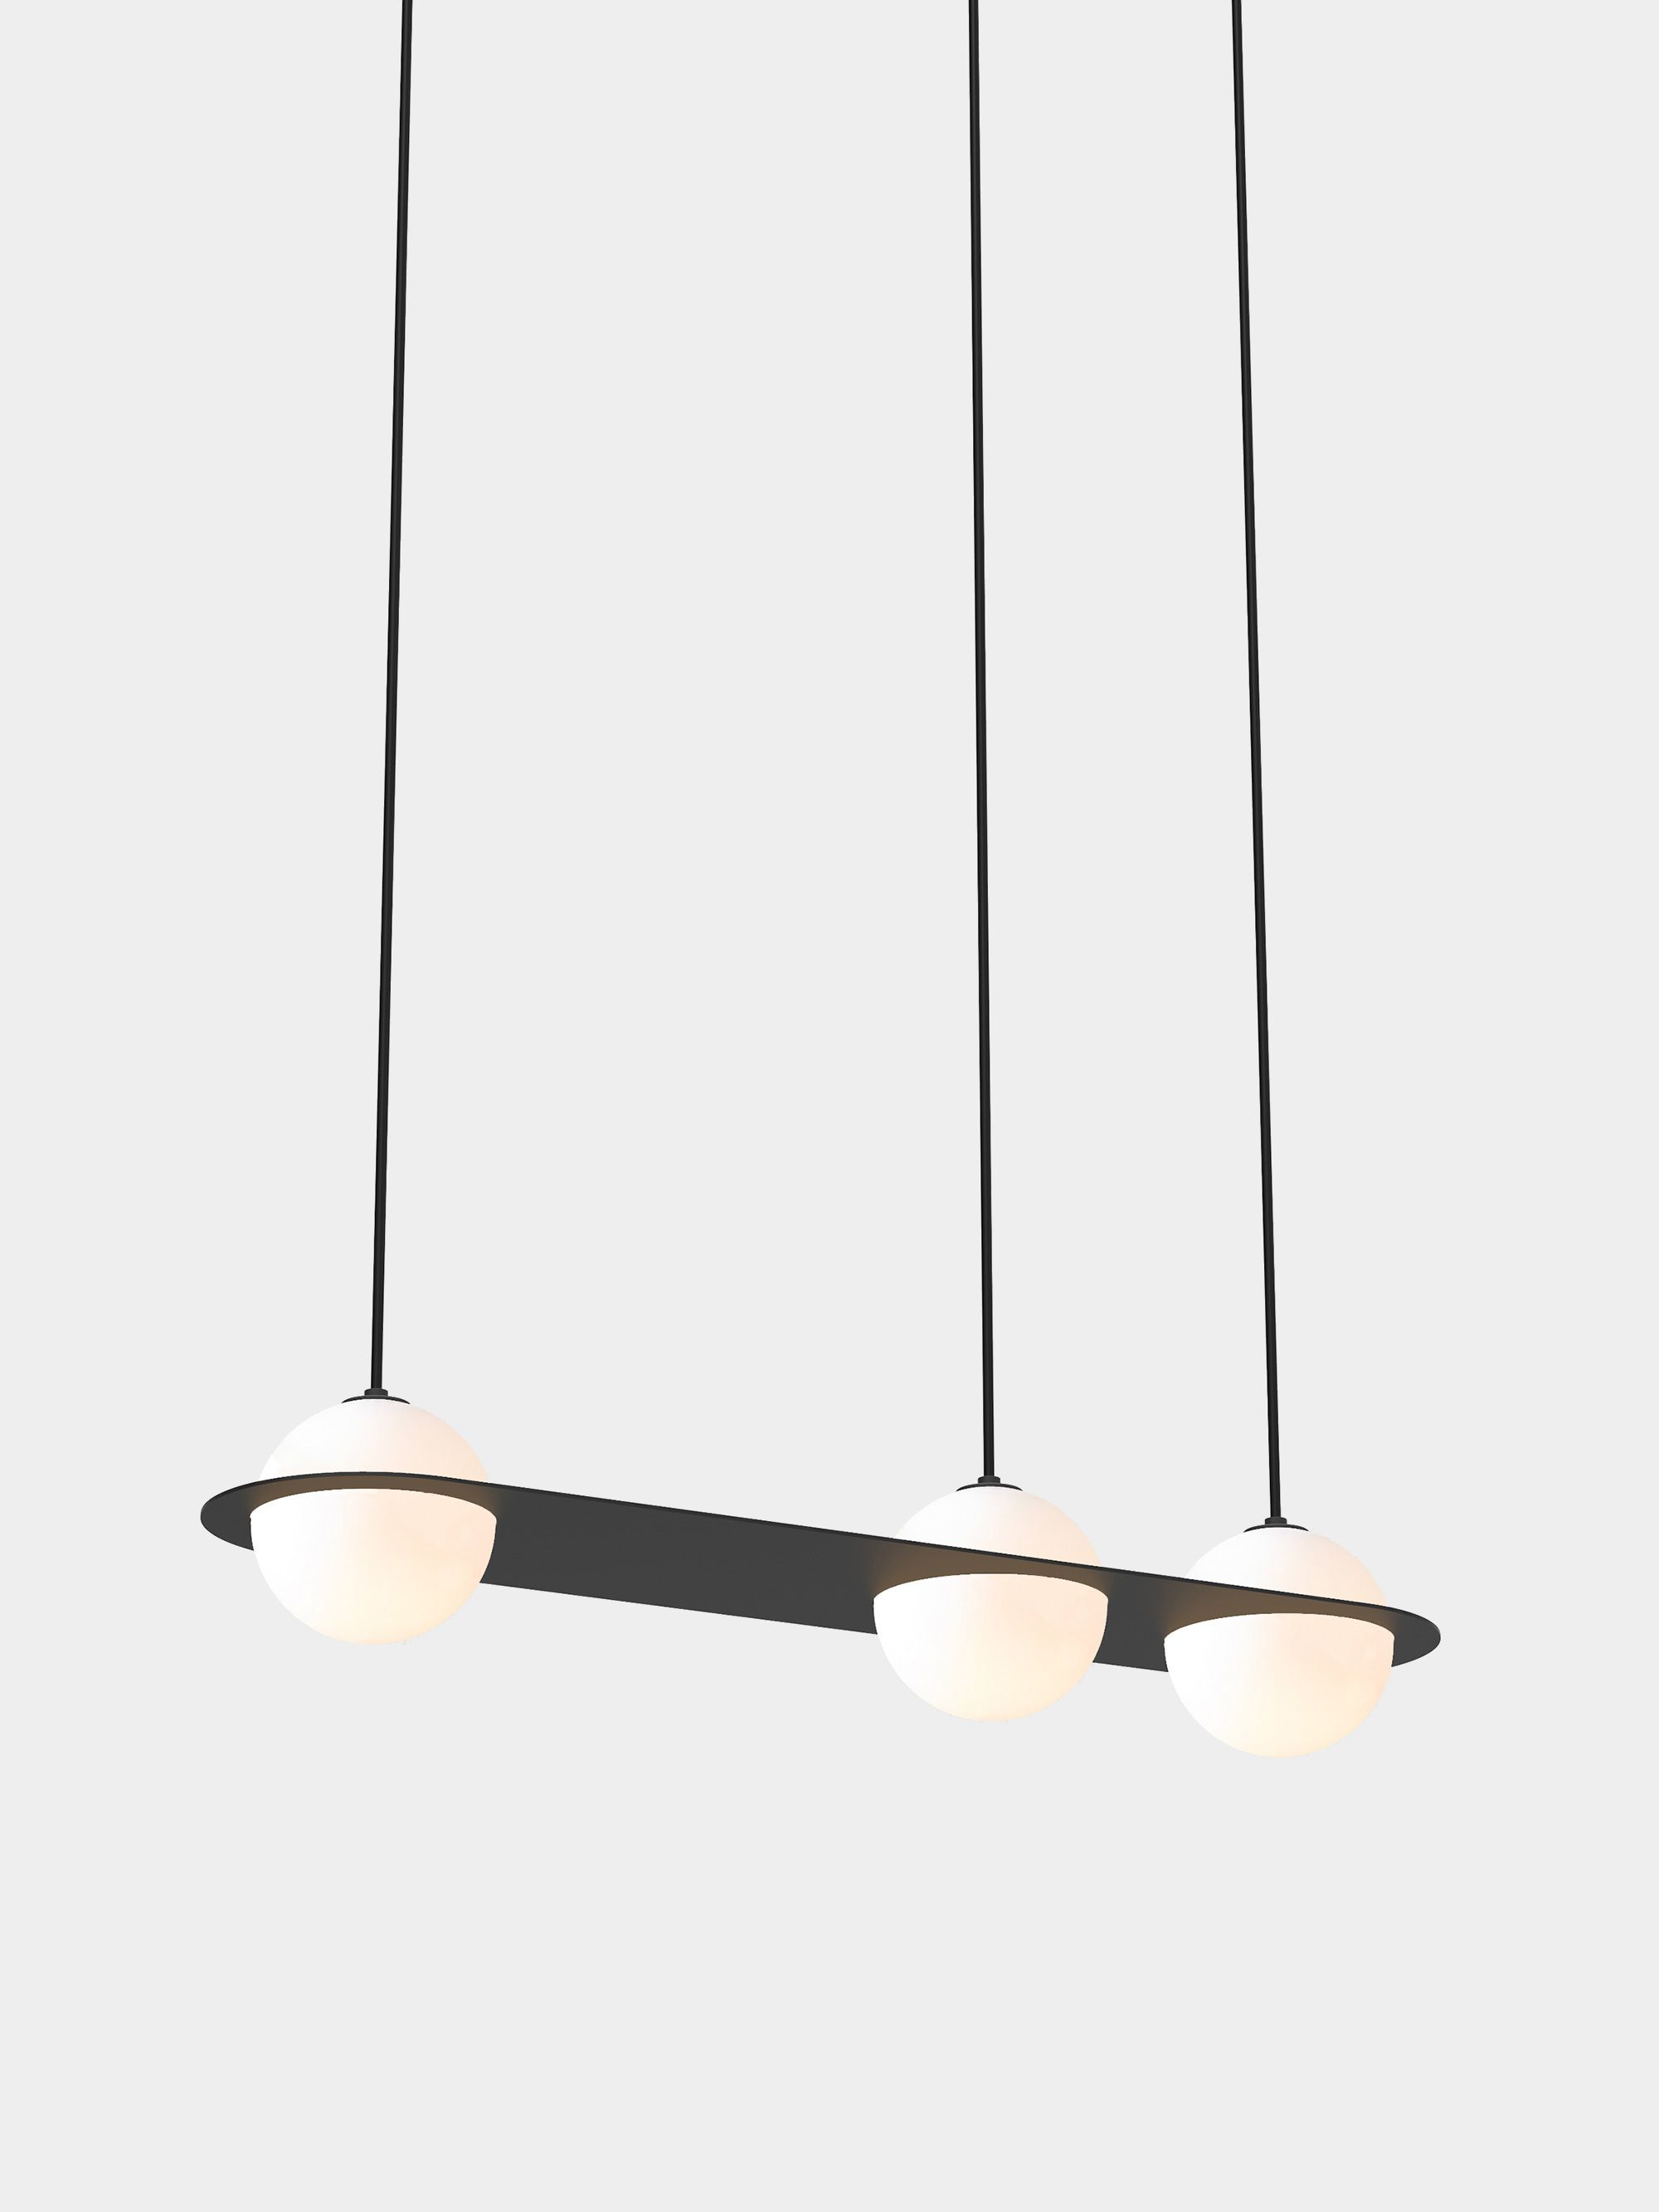 Laurent 07 in 2019 light dining lighting lighting light